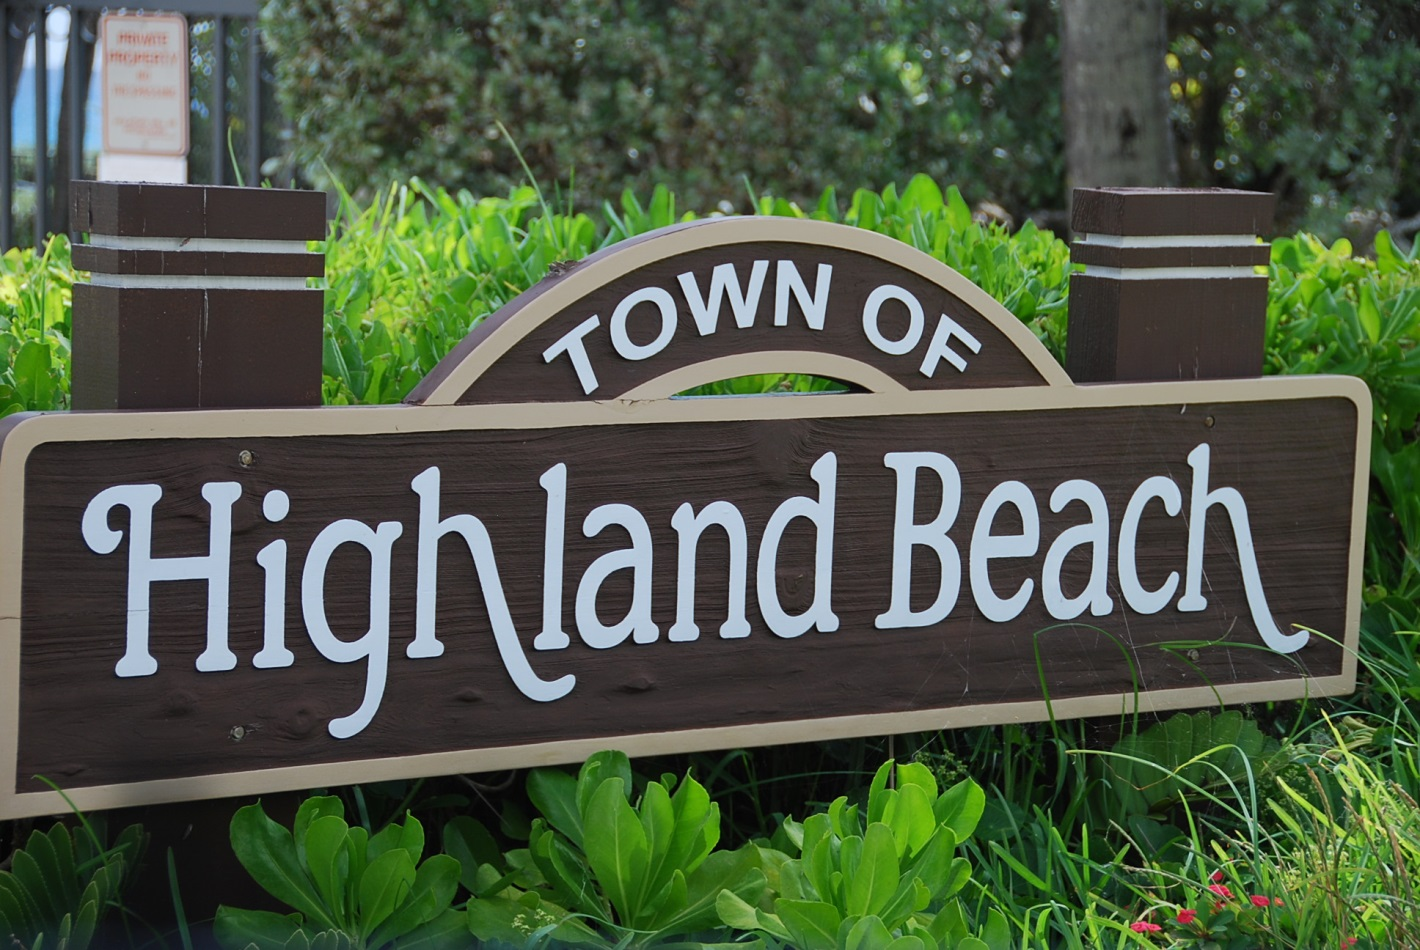 Town of Highland Beach sign